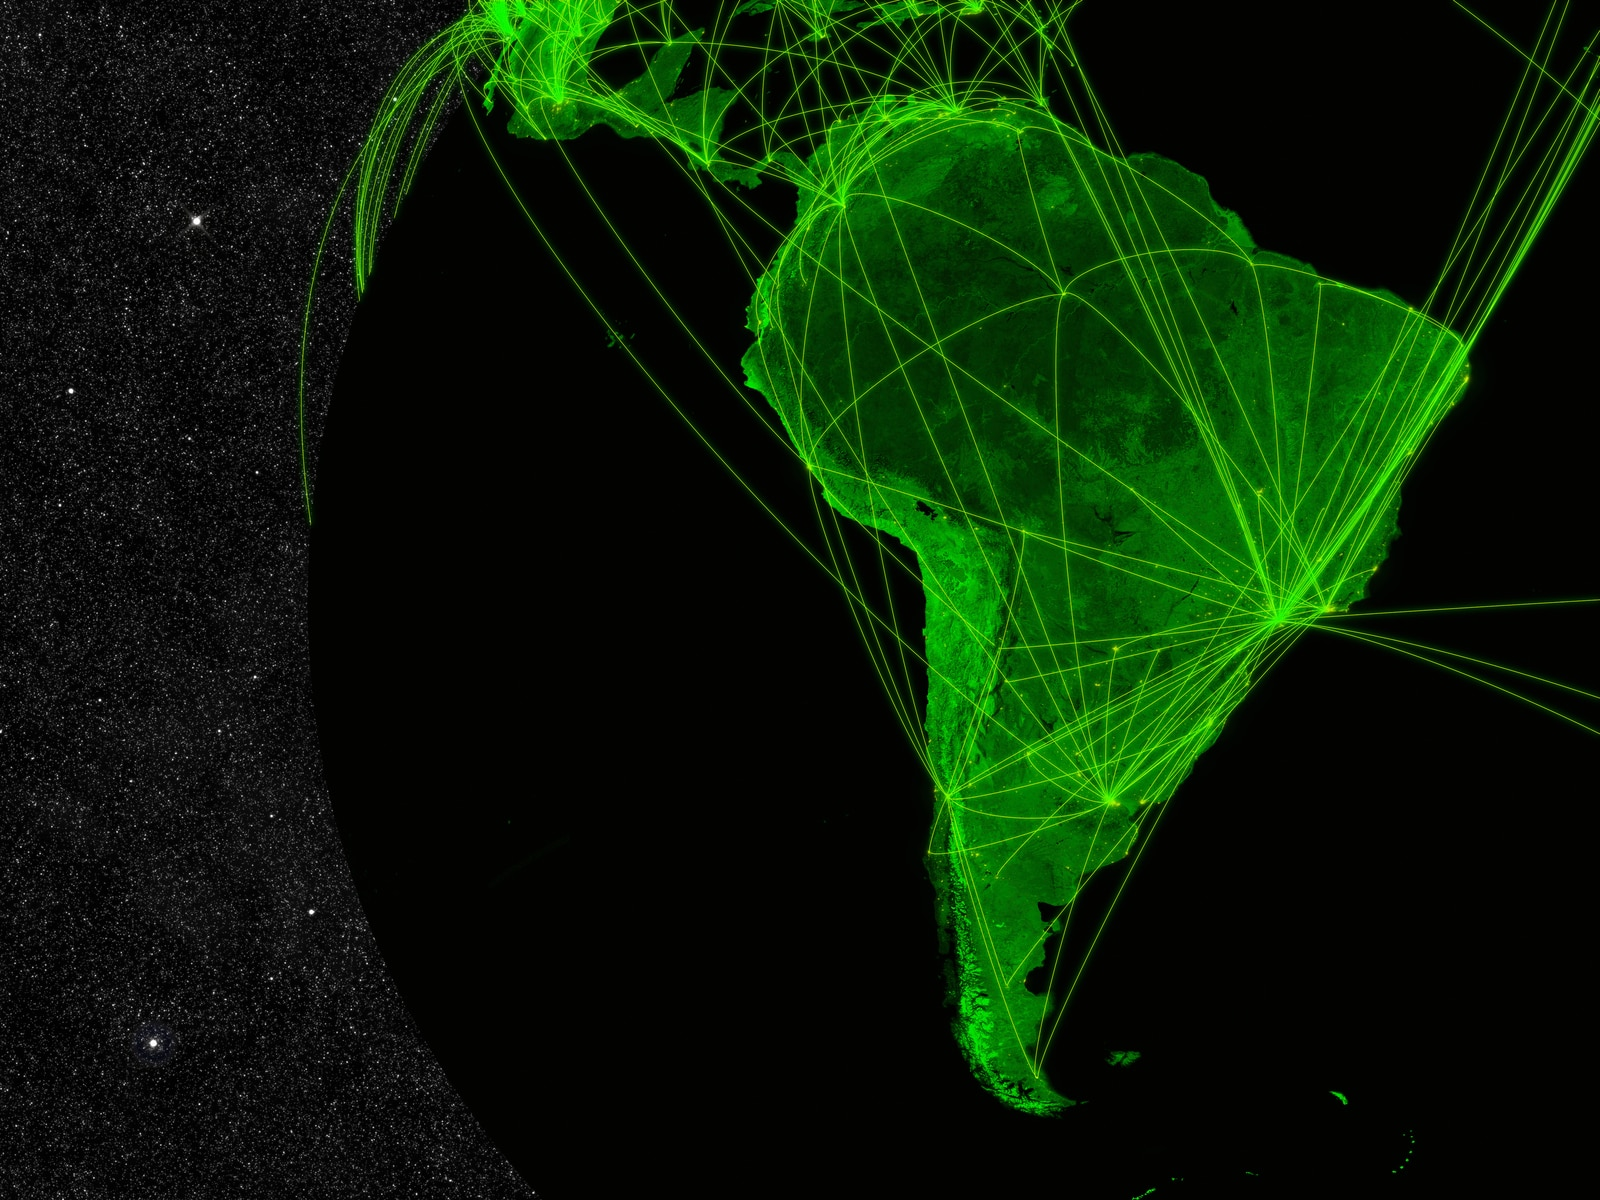 Network over South America. Information technology concept. Elements of this image furnished by NASA.